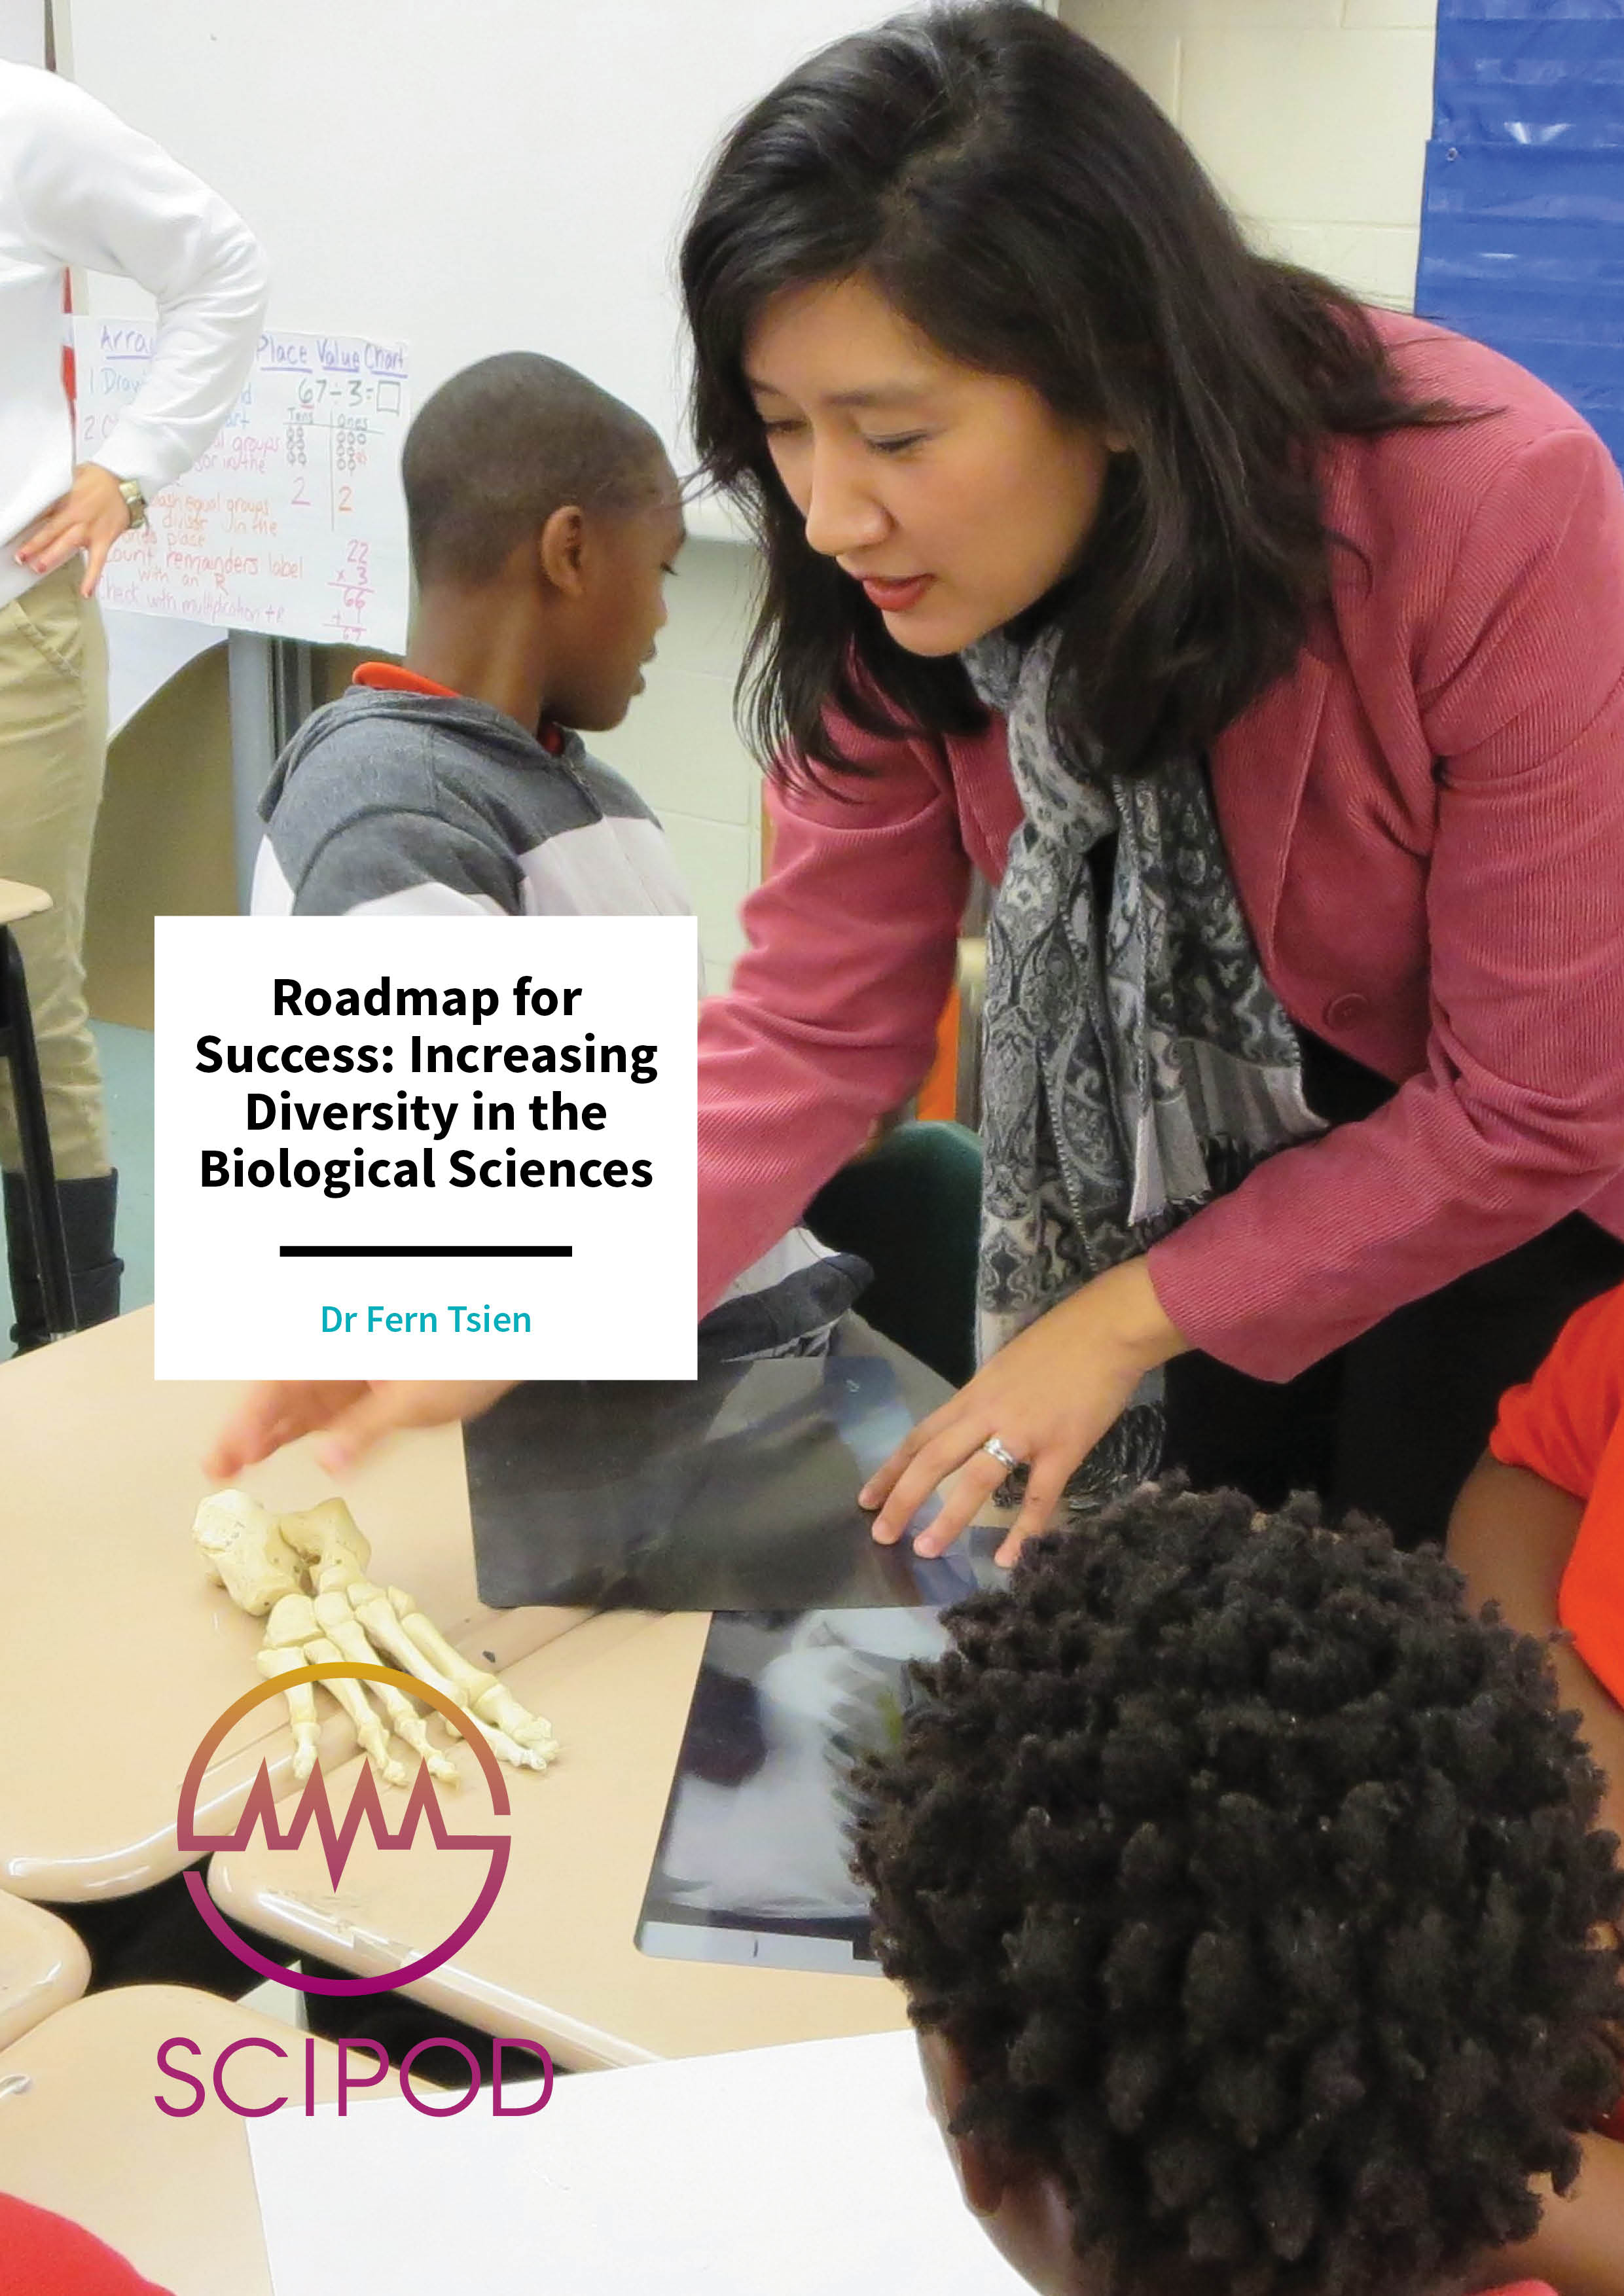 Roadmap for Success: Increasing Diversity in the Biological Sciences – Dr Fern Tsien, Louisiana State University Health Sciences Center